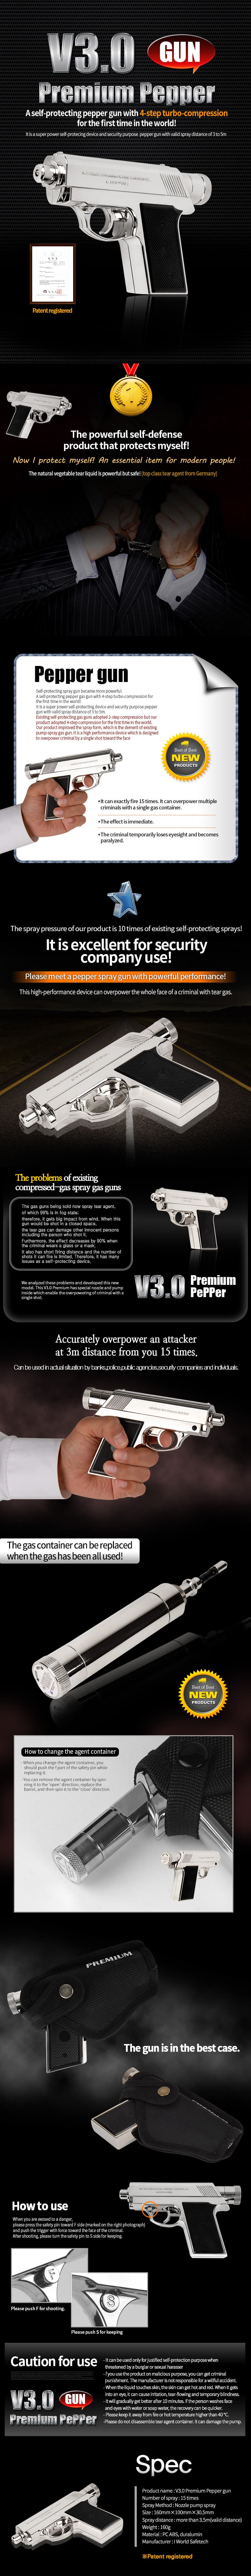 V3-0 Premiun -pepper spray gun-